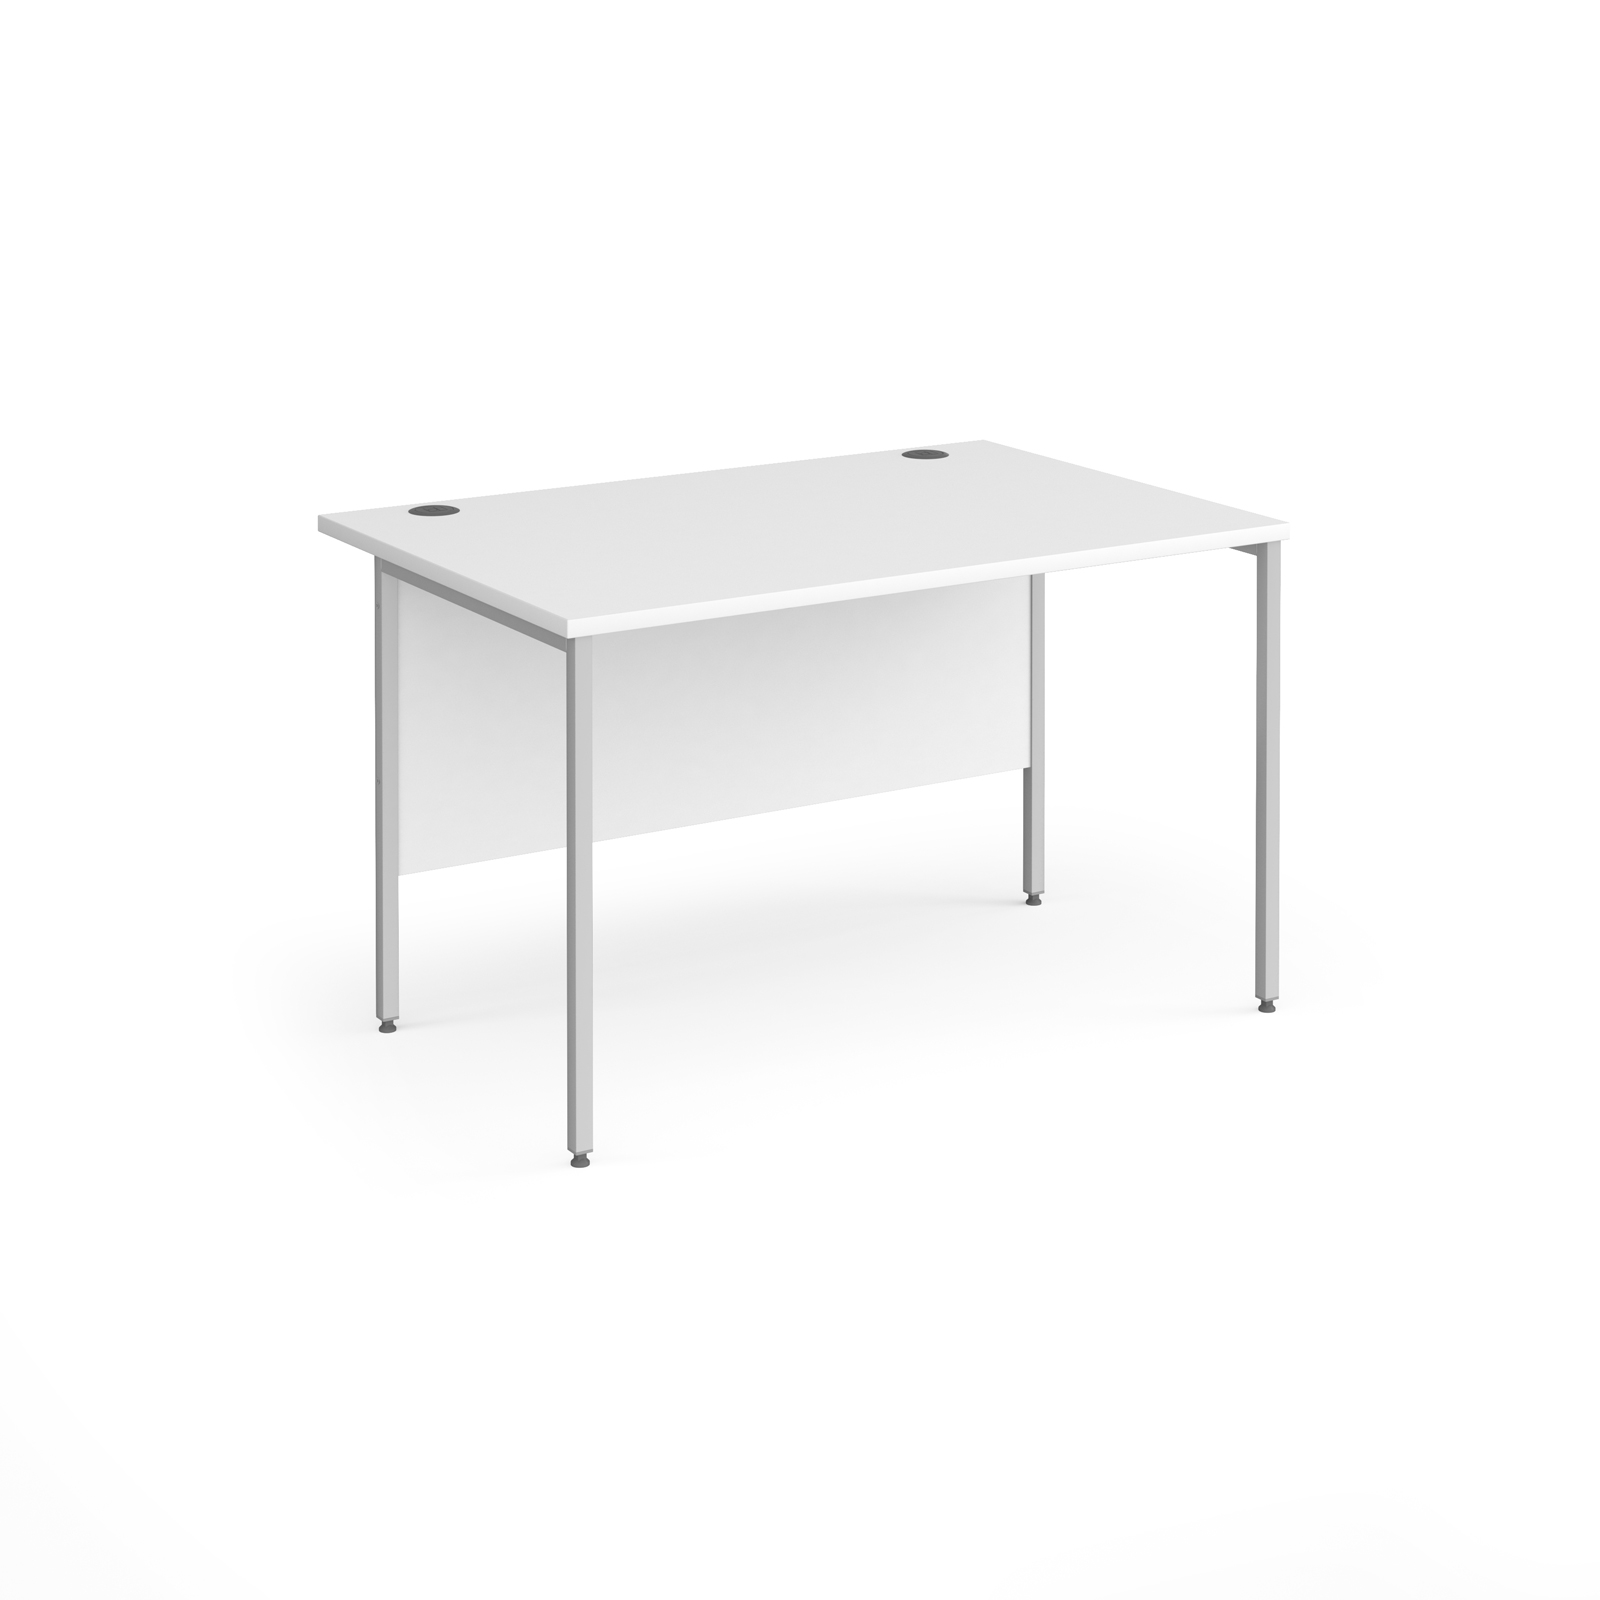 Contract 25 straight desk with silver H-Frame leg 1200mm x 800mm - white top